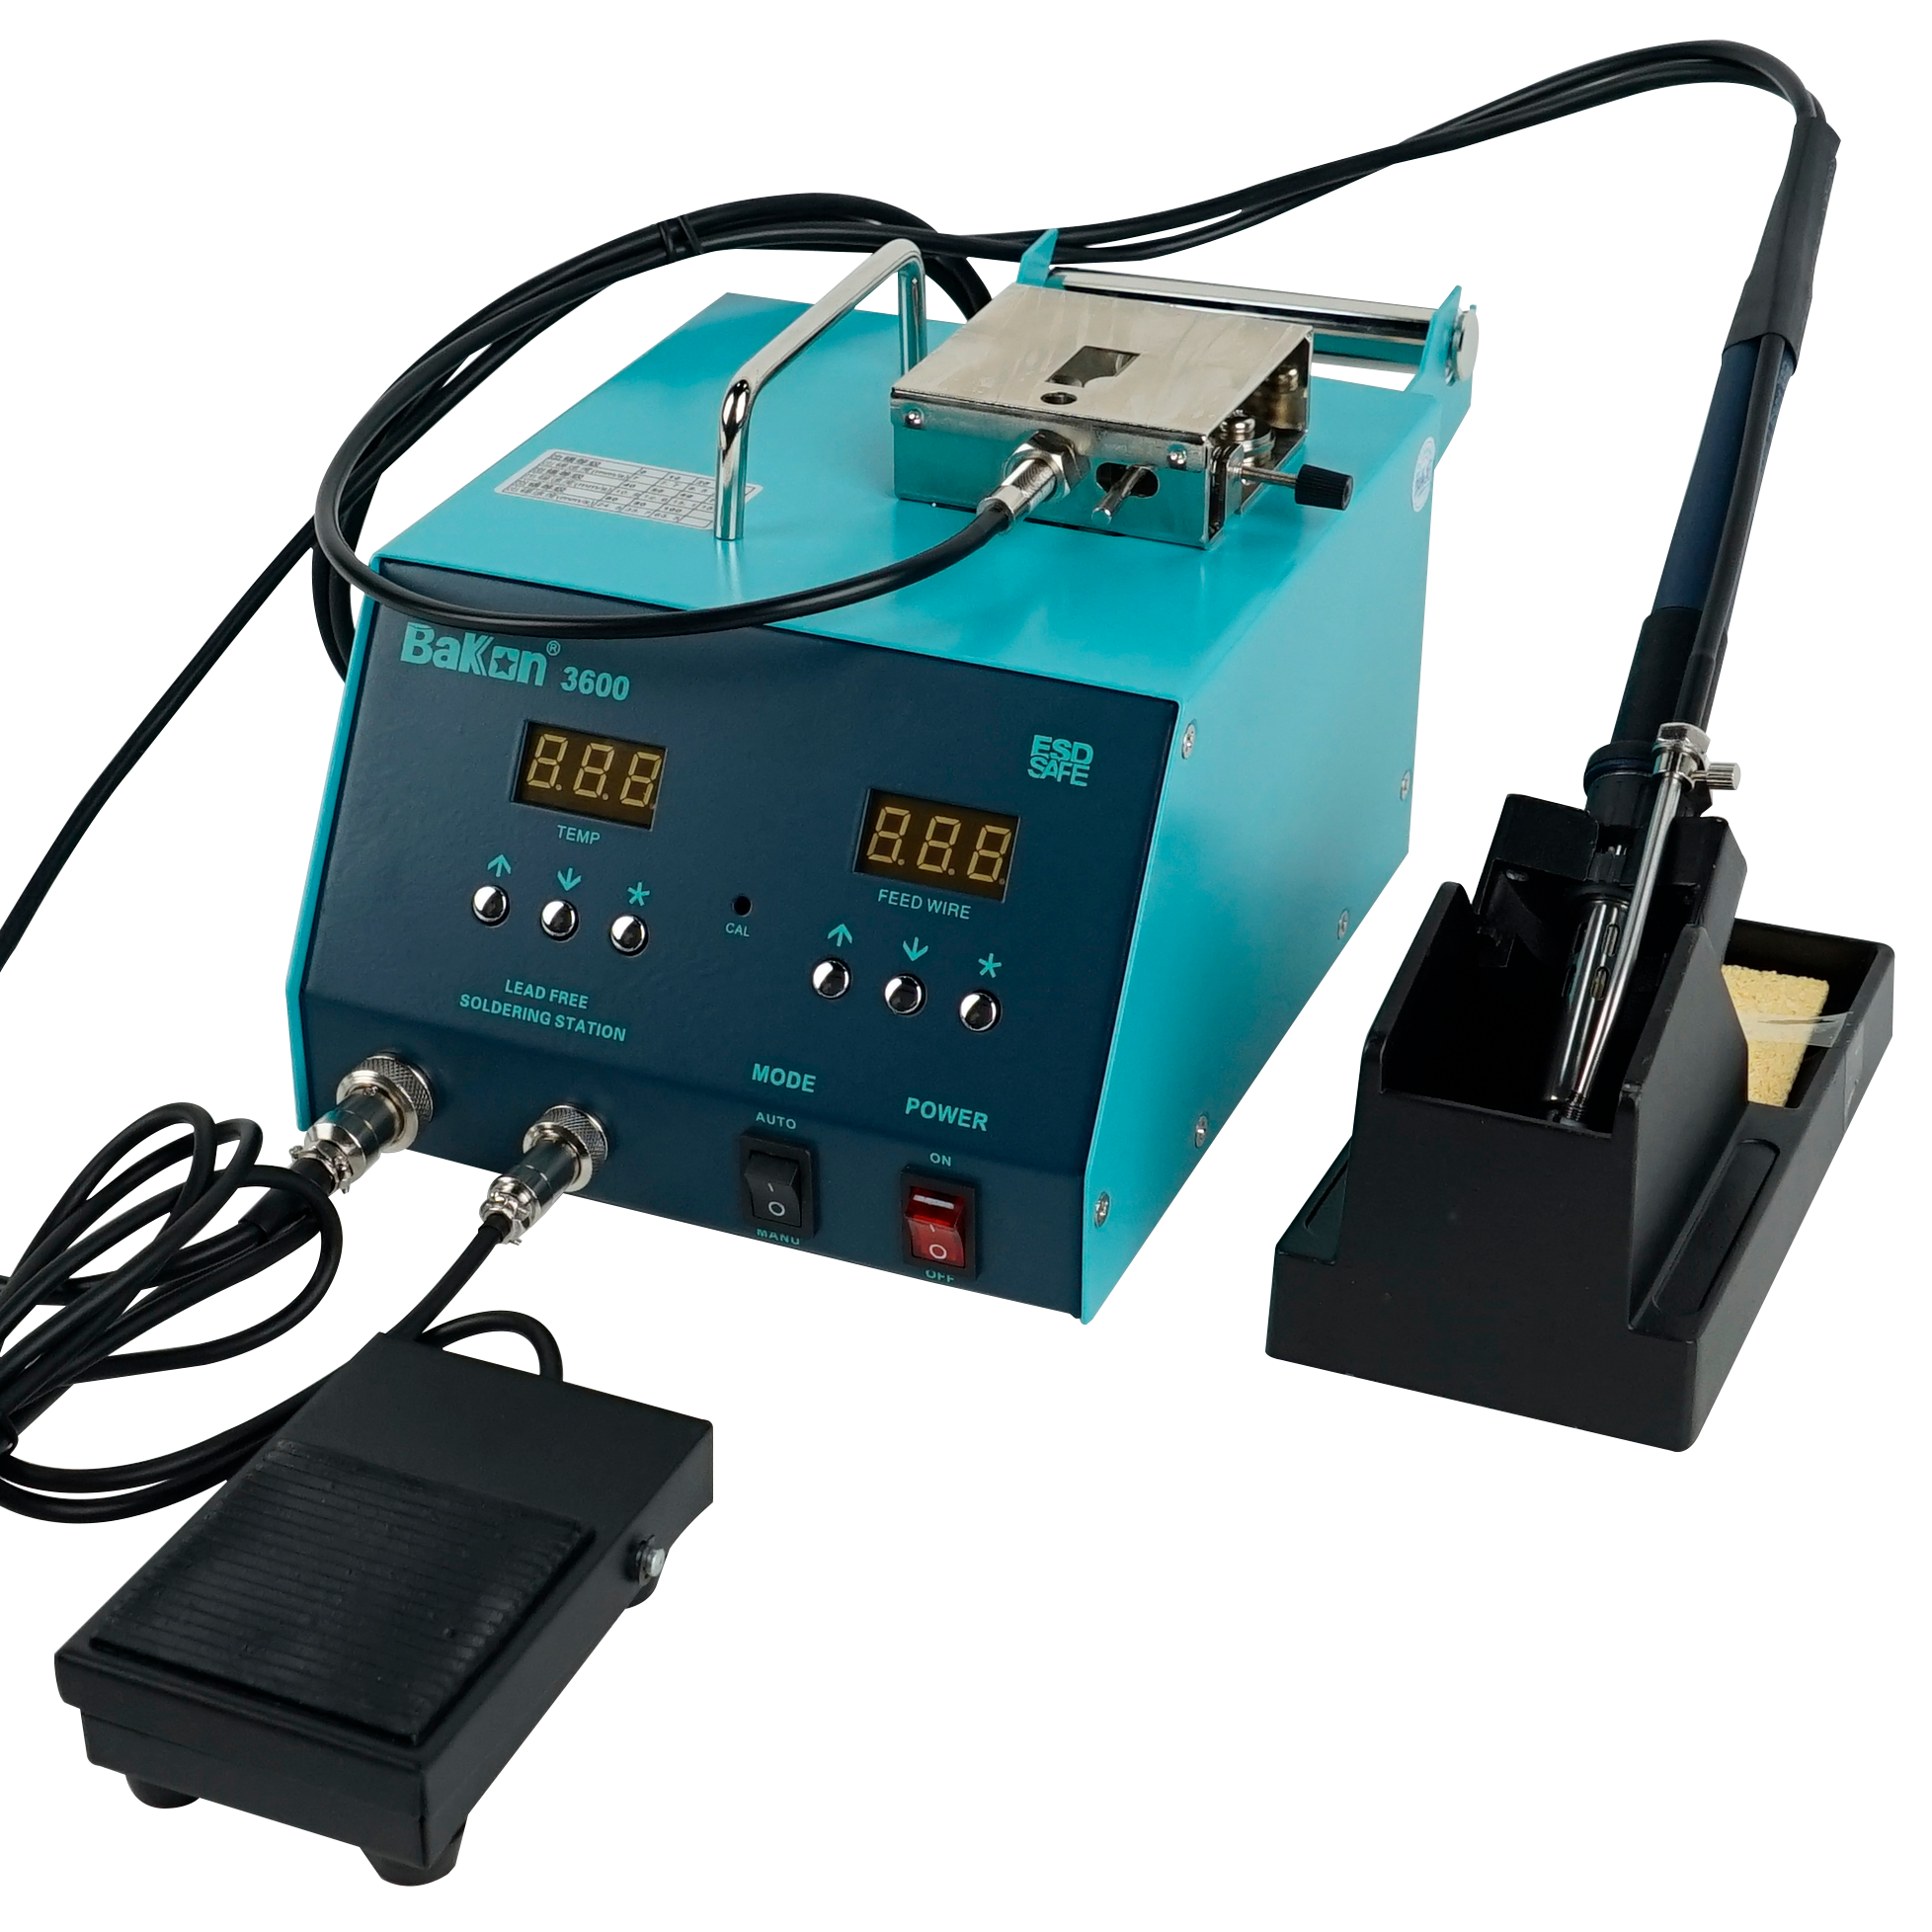 BK3600 High frequency wire feeder solder & lead-free soldering station for factory soldering